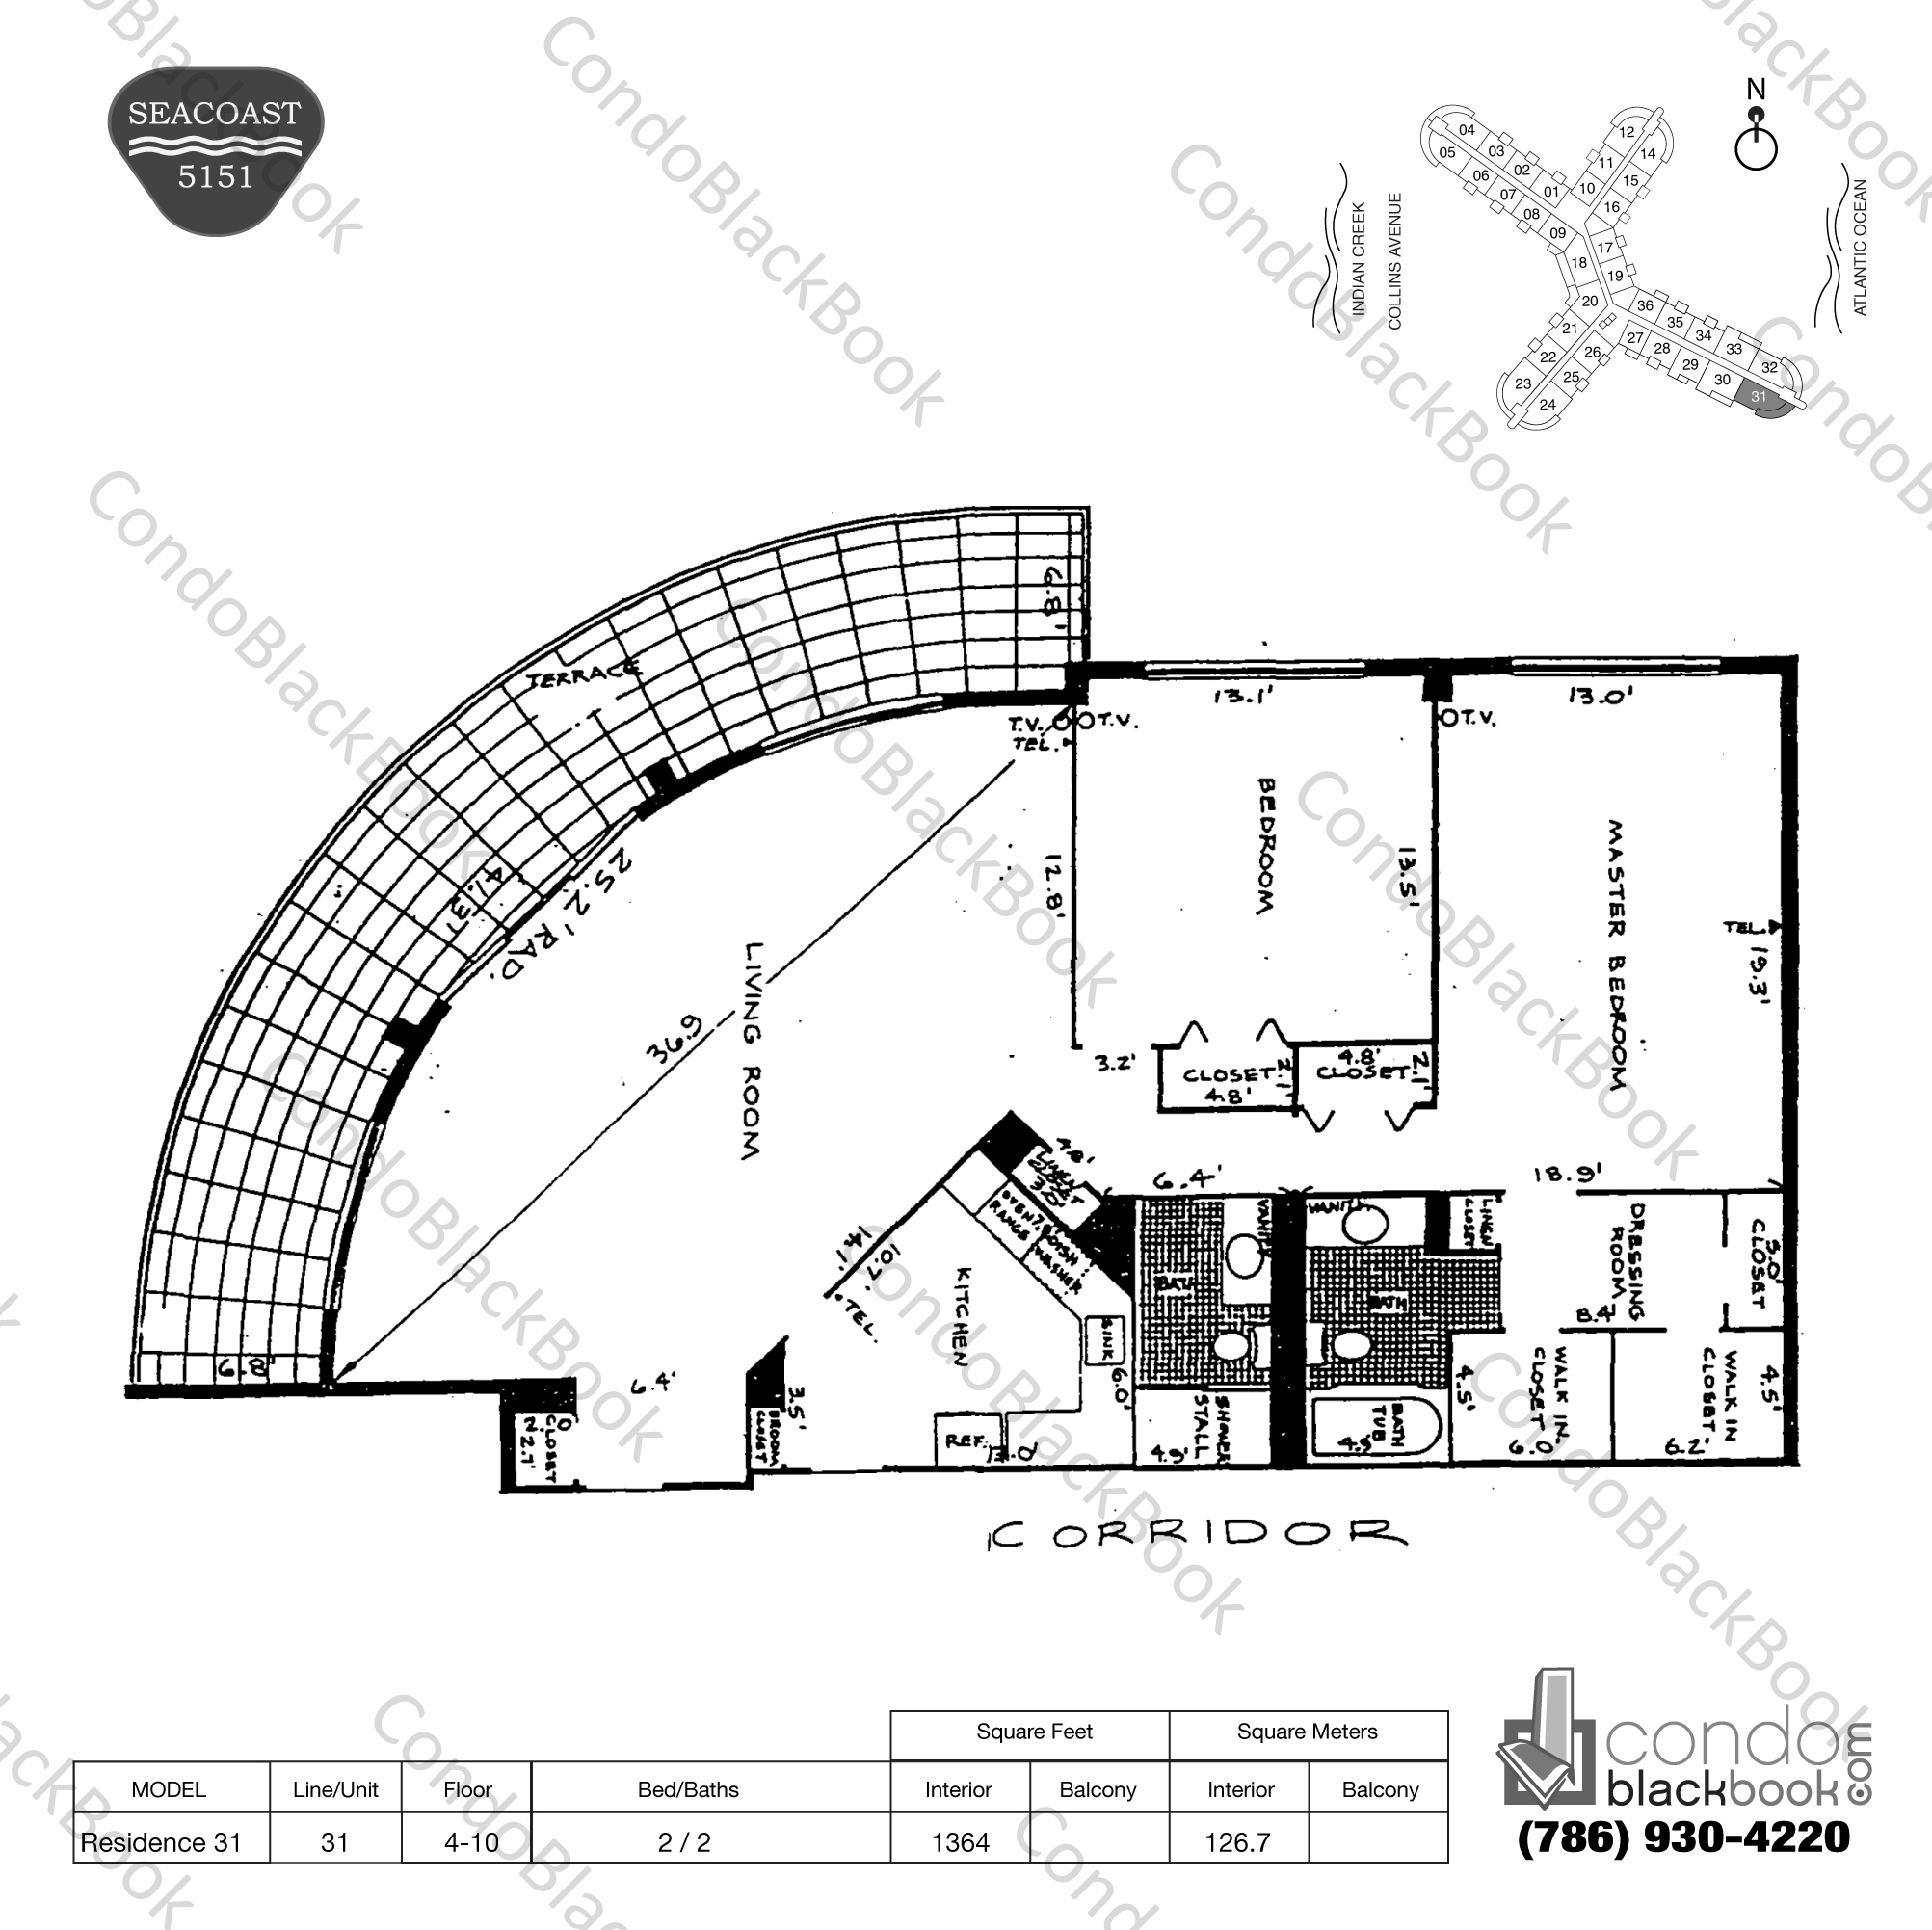 Floor plan for Seacoast 5151 Mid-Beach Miami Beach, model Residence 31, line 31, 2 / 2 bedrooms, 1364 sq ft